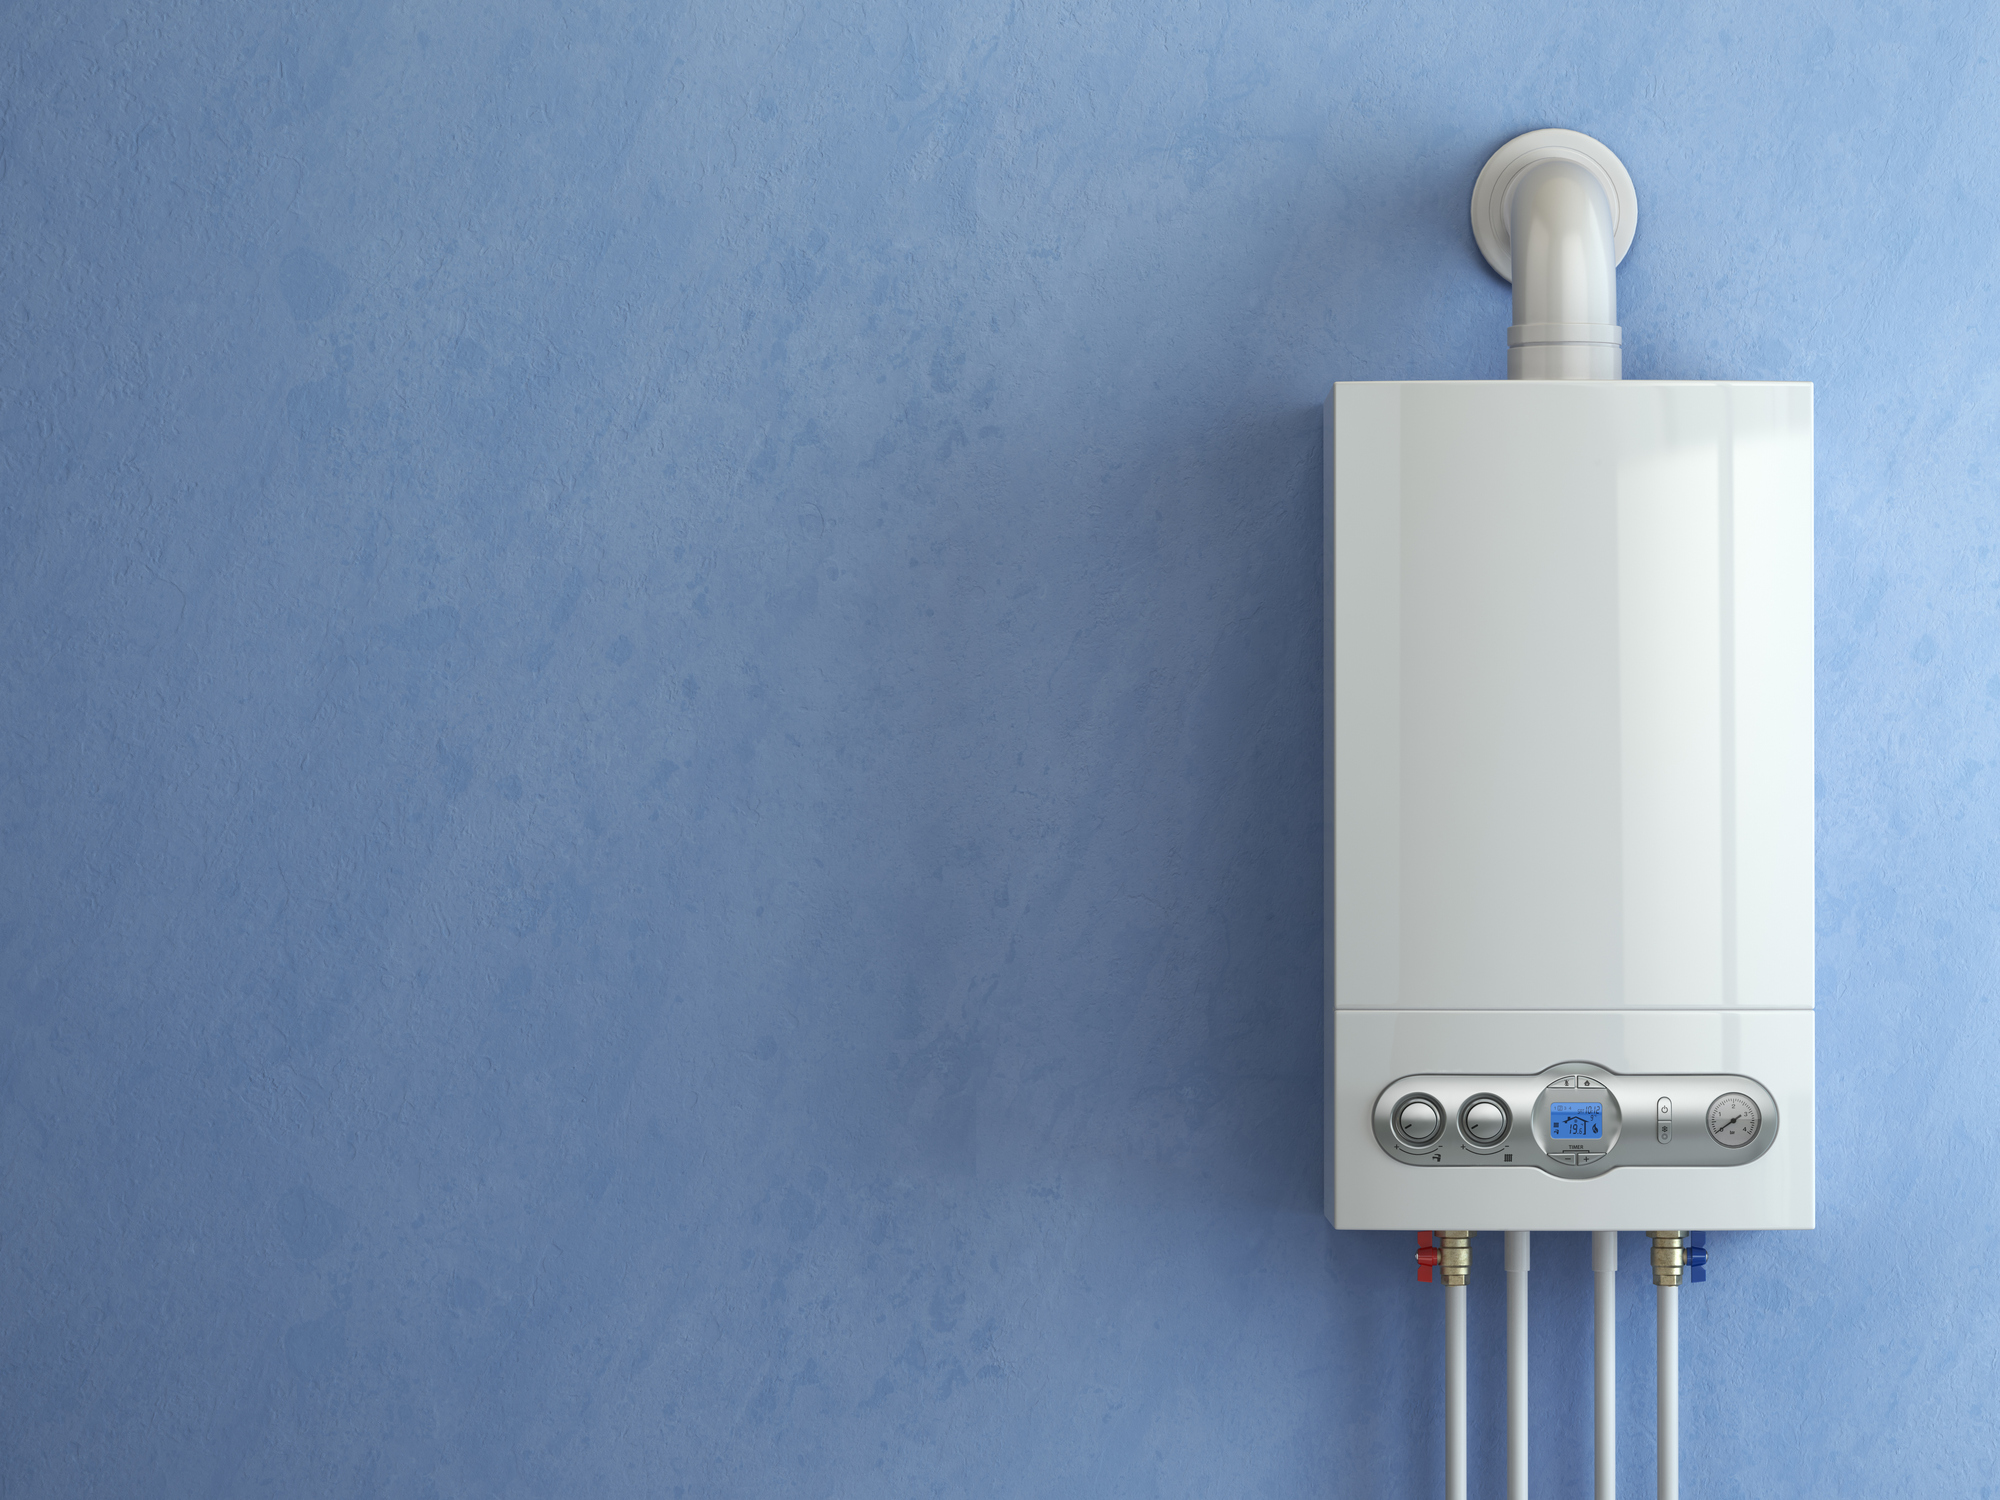 EU Commission paralysis delays phase-out of fossil fuel boilers